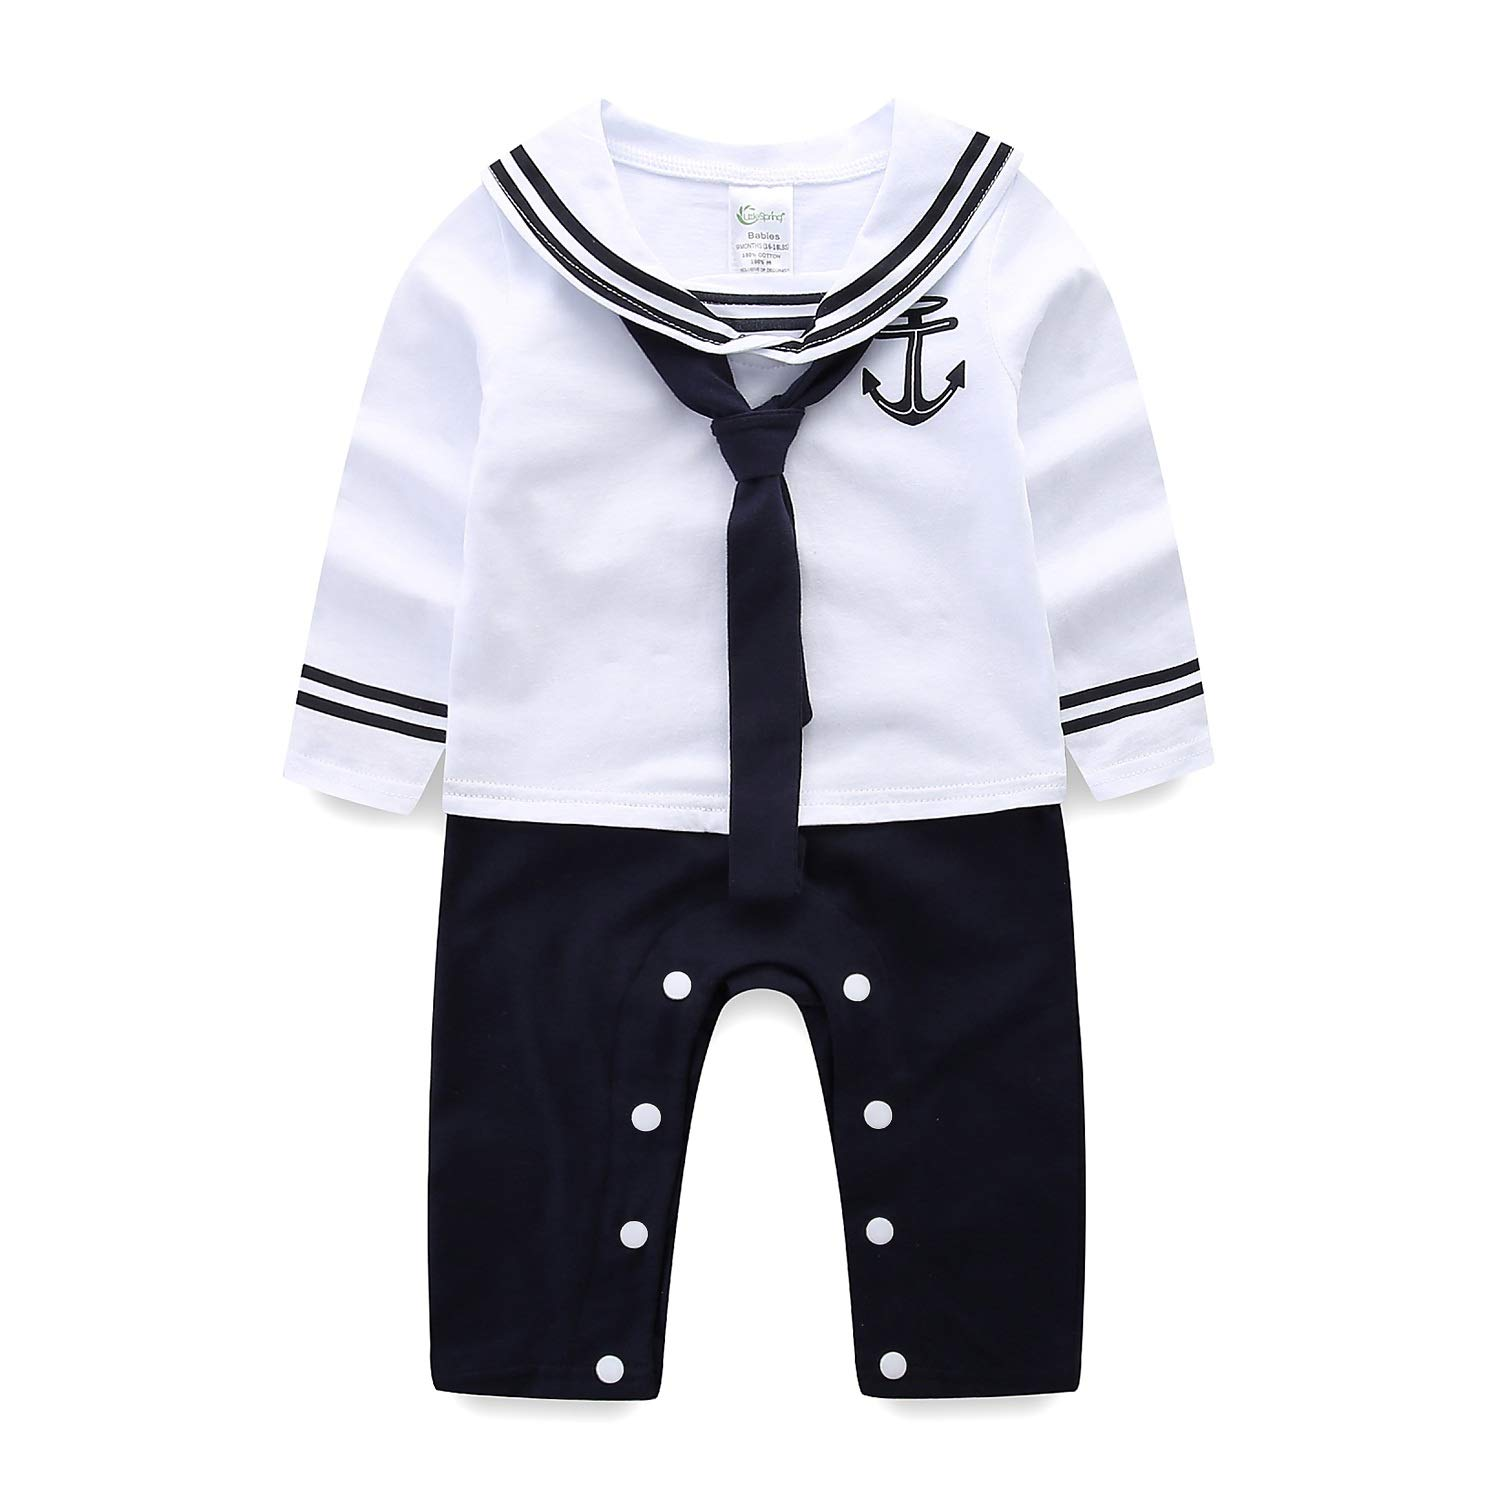 6e42efce971ff Amazon.com  Mud Kingdom Baby Boy Rompers with Hats Summer Sailor  Clothing